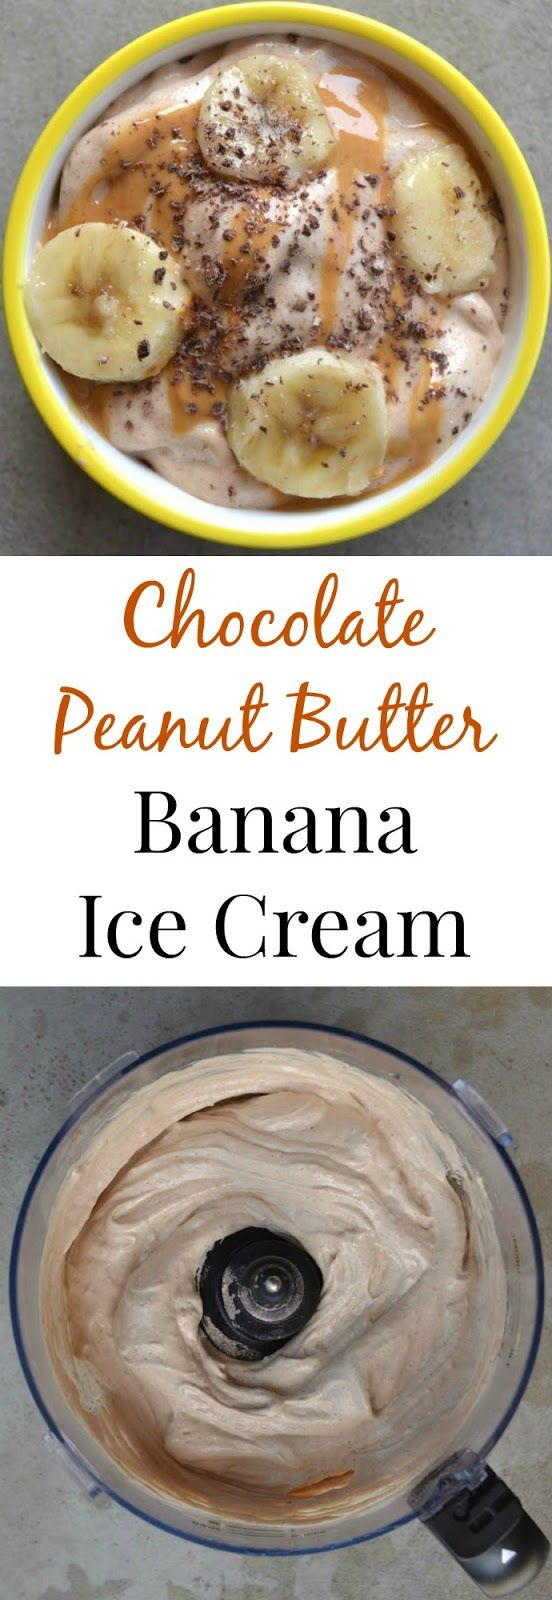 This Chocolate Peanut Butter Banana Protein Ice Cream takes 2 minutes to make, tastes just like ice cream and is super healthy! www.nutritionistreviews.com